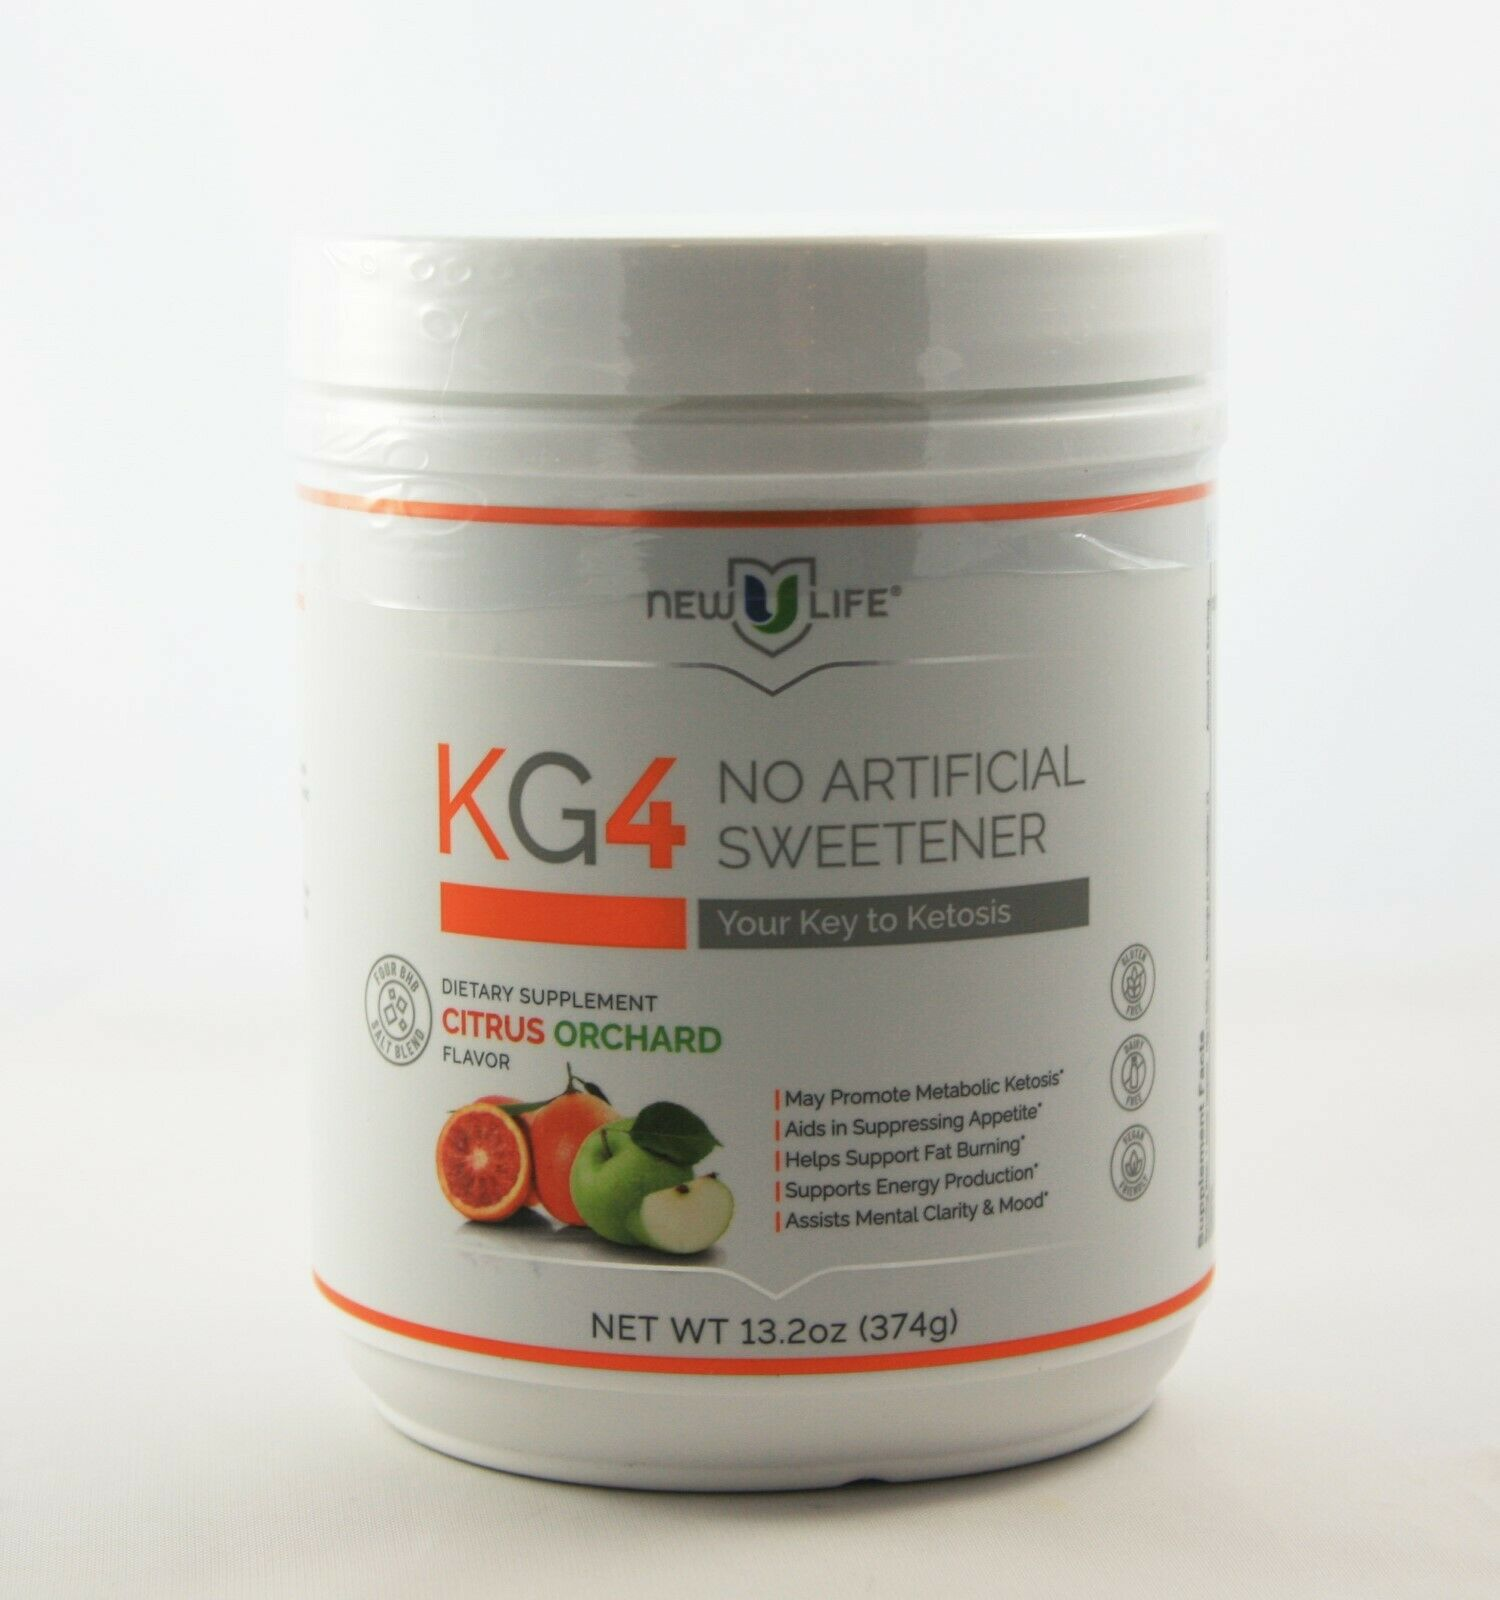 NewULife New U Life KG4 Citrus Orchard Flavor - Free Shipping